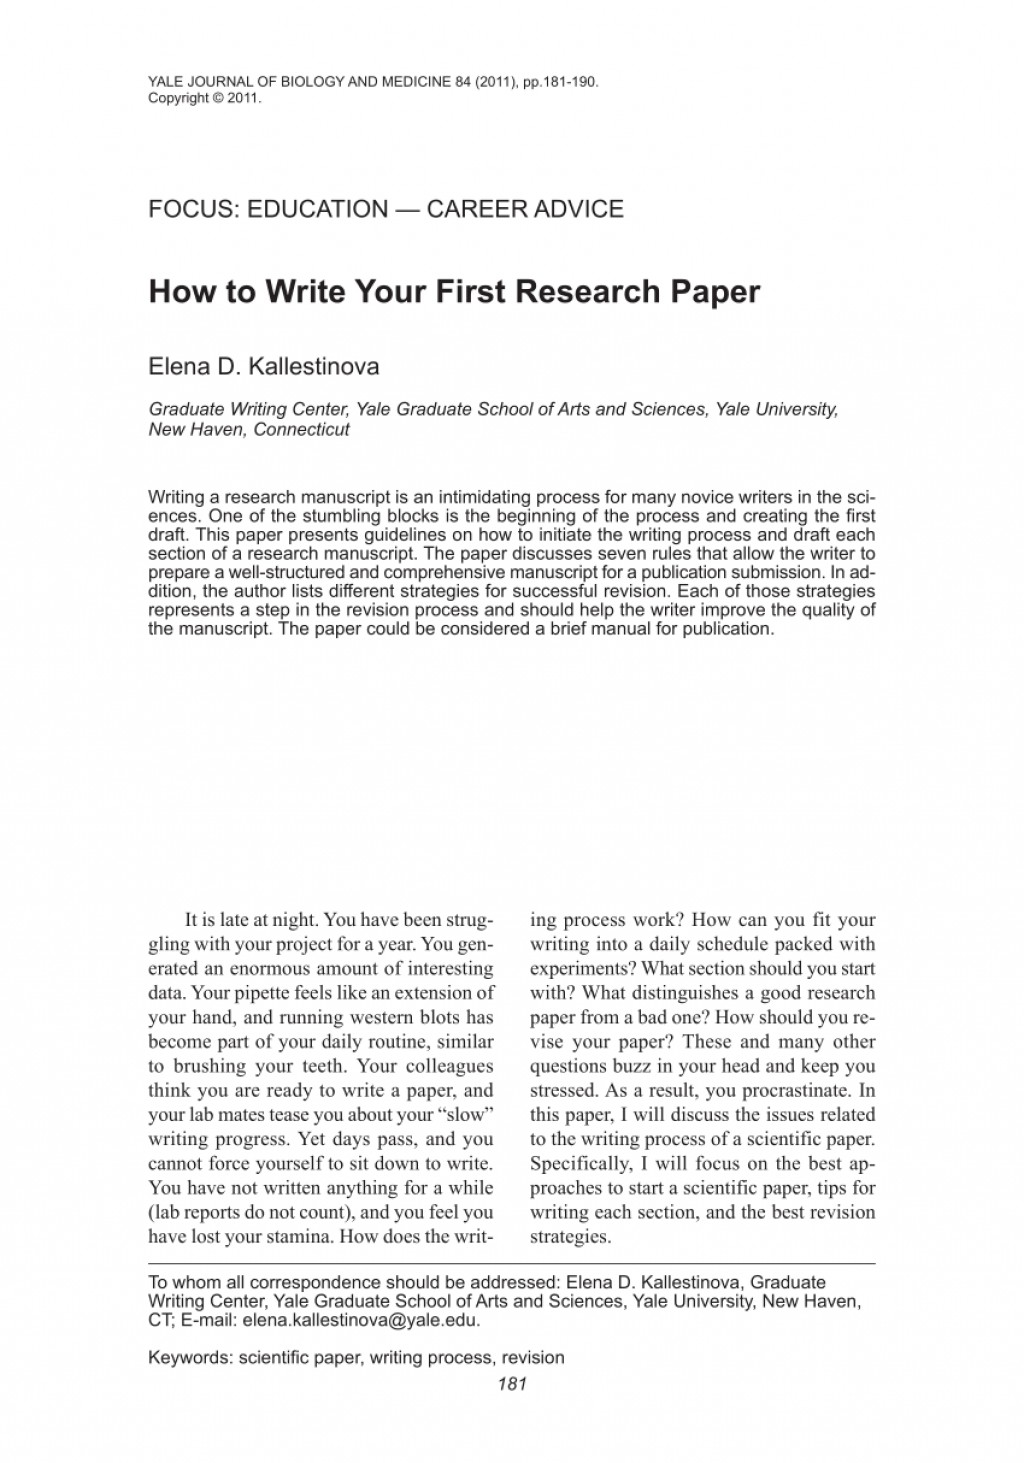 002 Largepreview Research Paper How Top To Cite A Website In With No Author Your Apa Starting Words Large